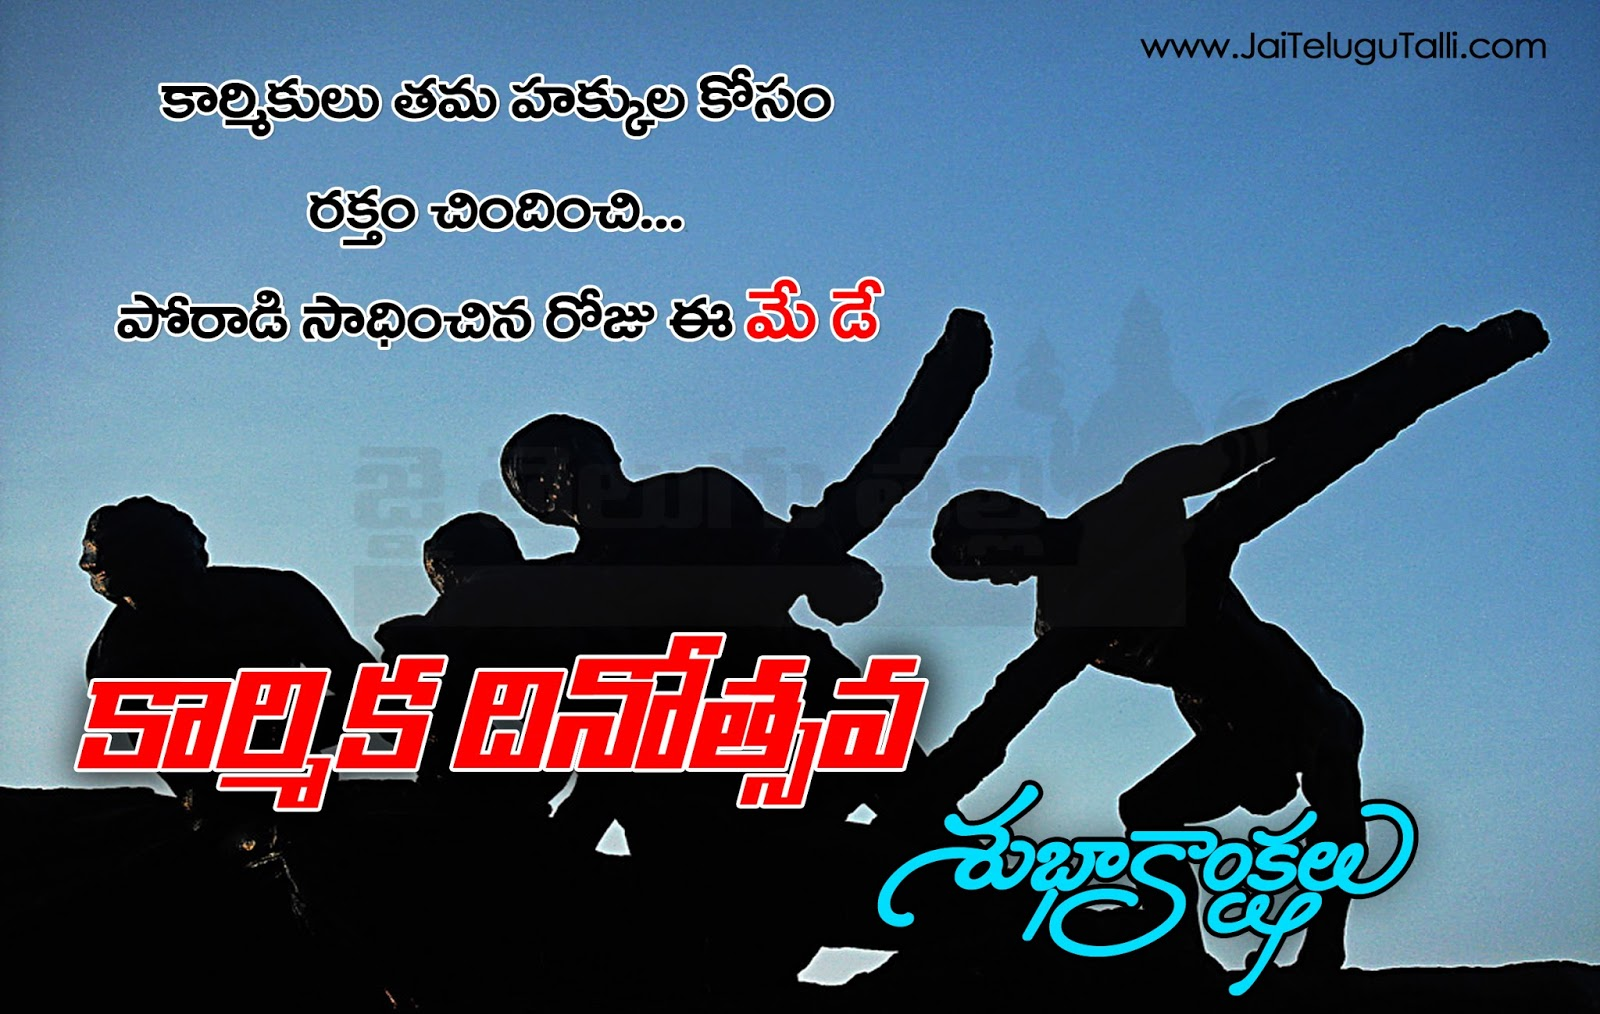 Best May Day Telugu Quotes And Wishes 2016